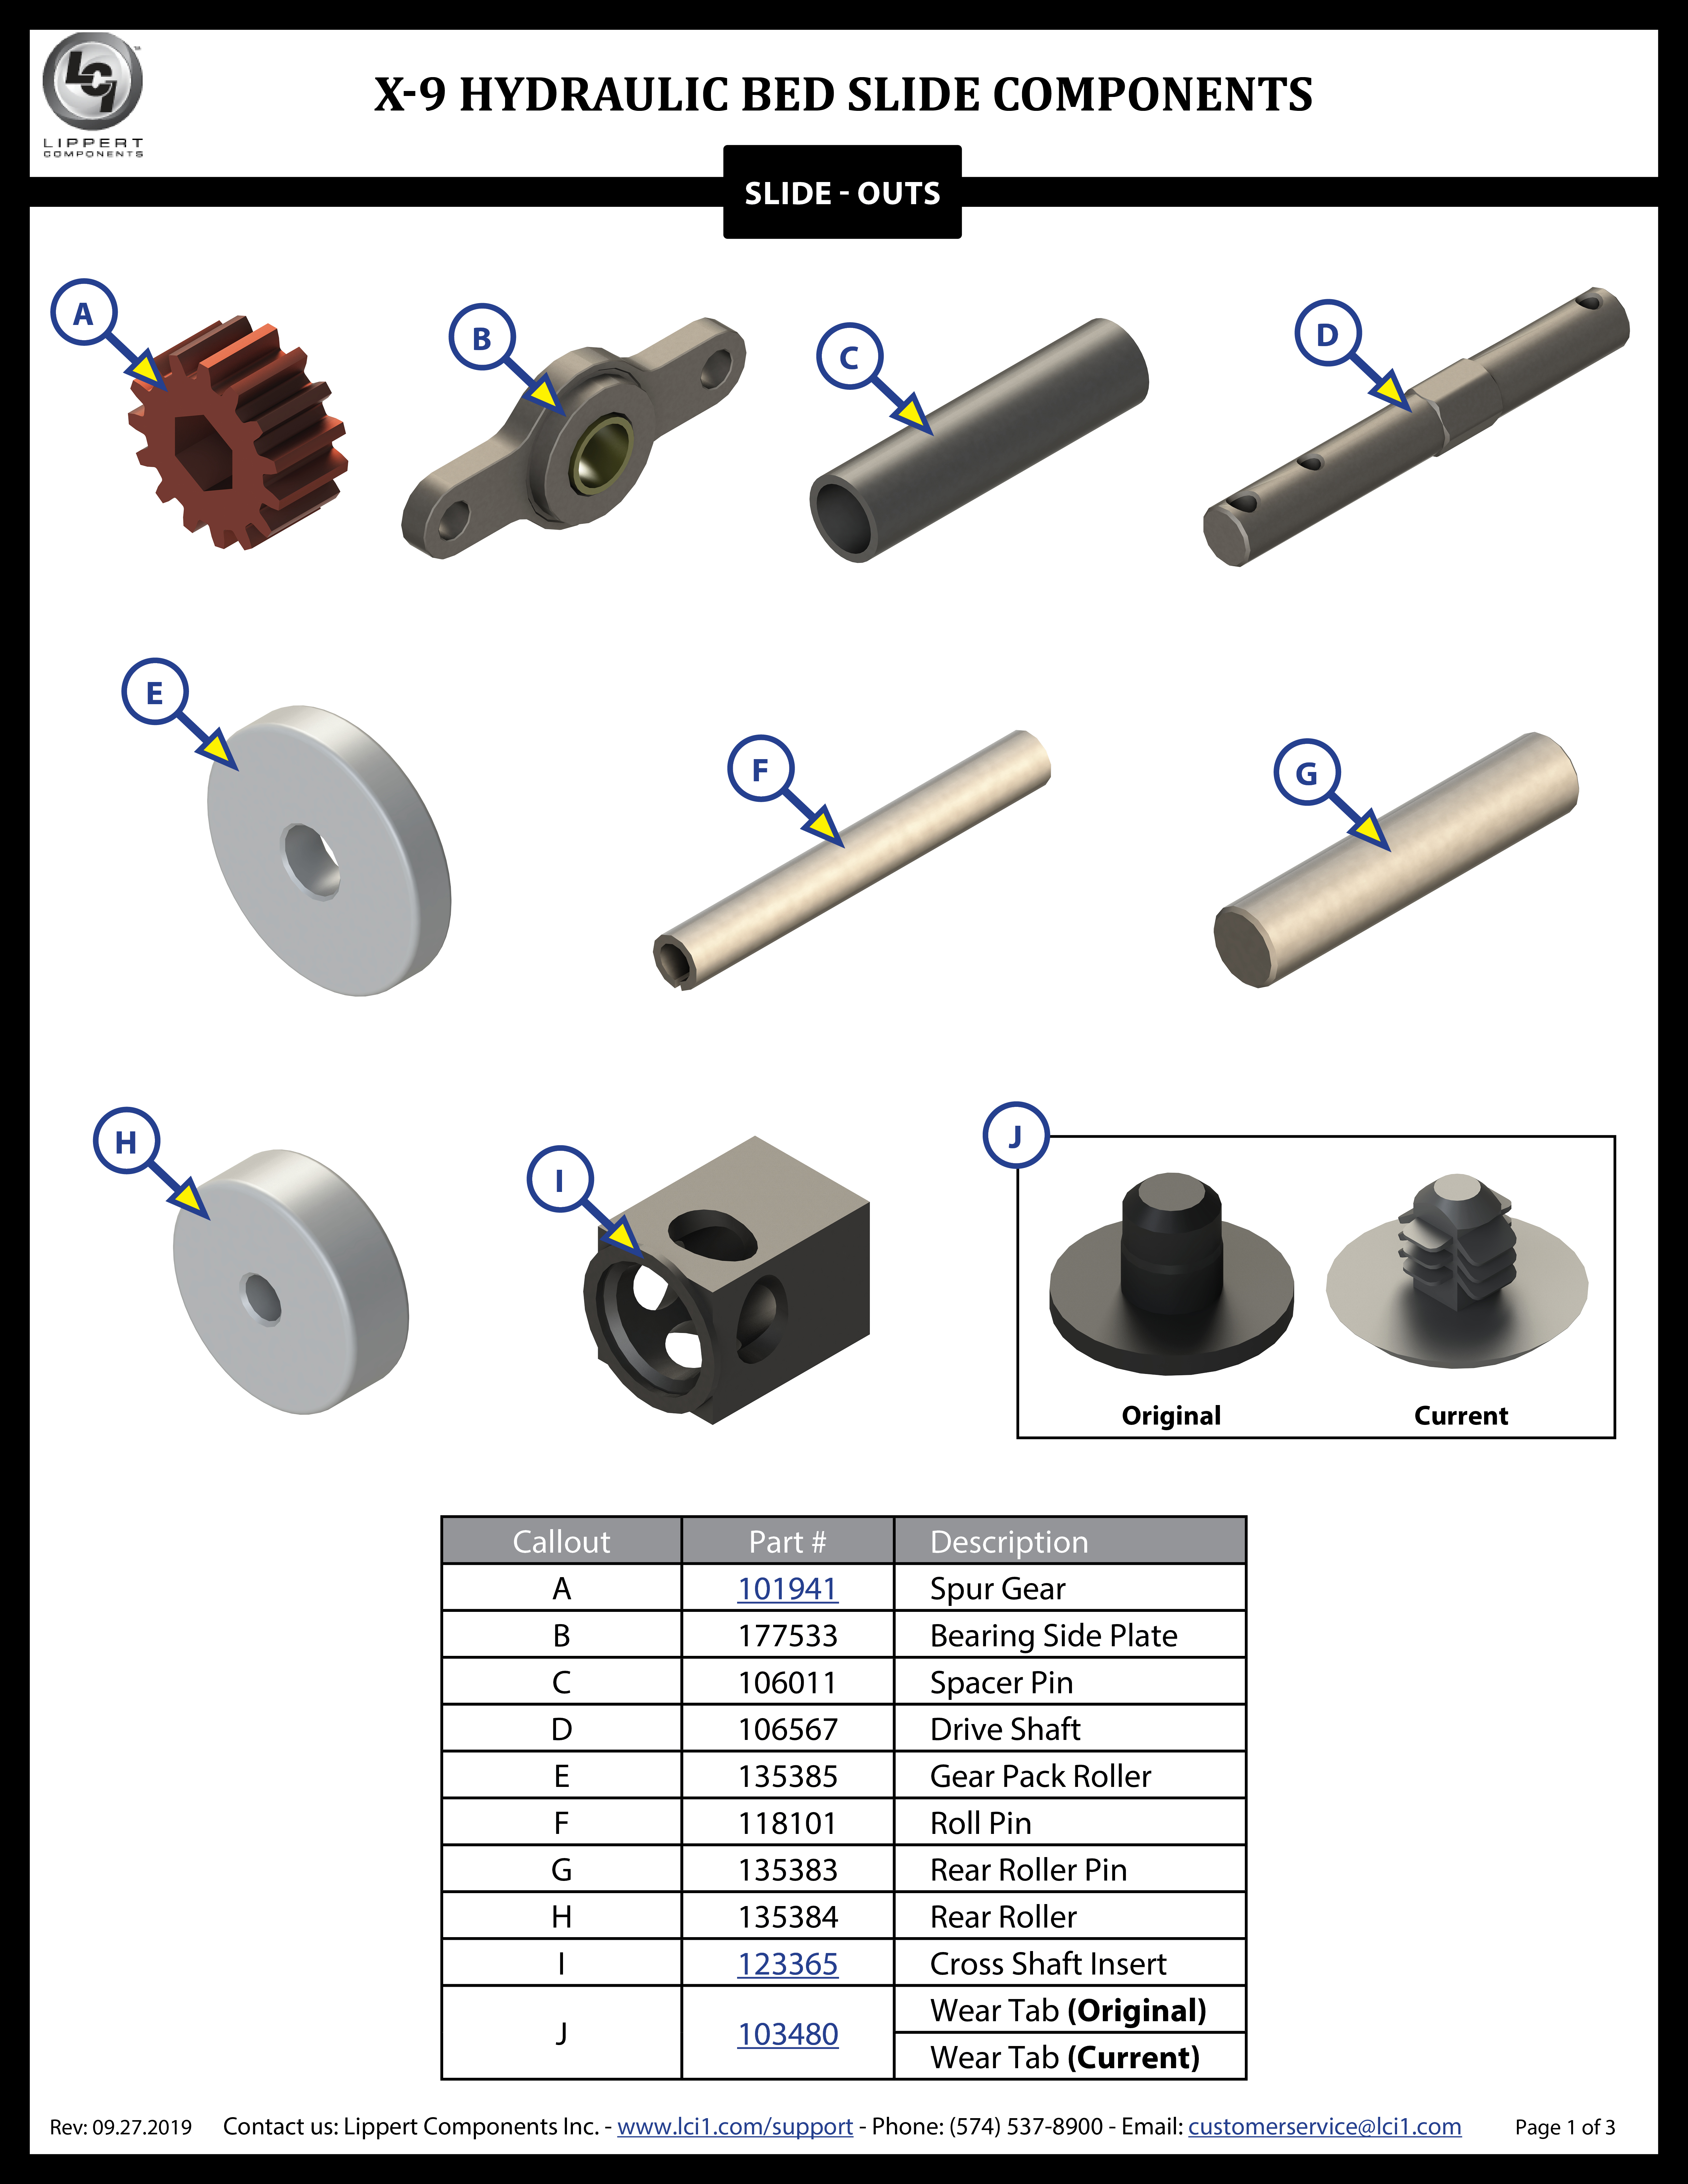 X-9 Hydraulic Bed Slide-Out System Components